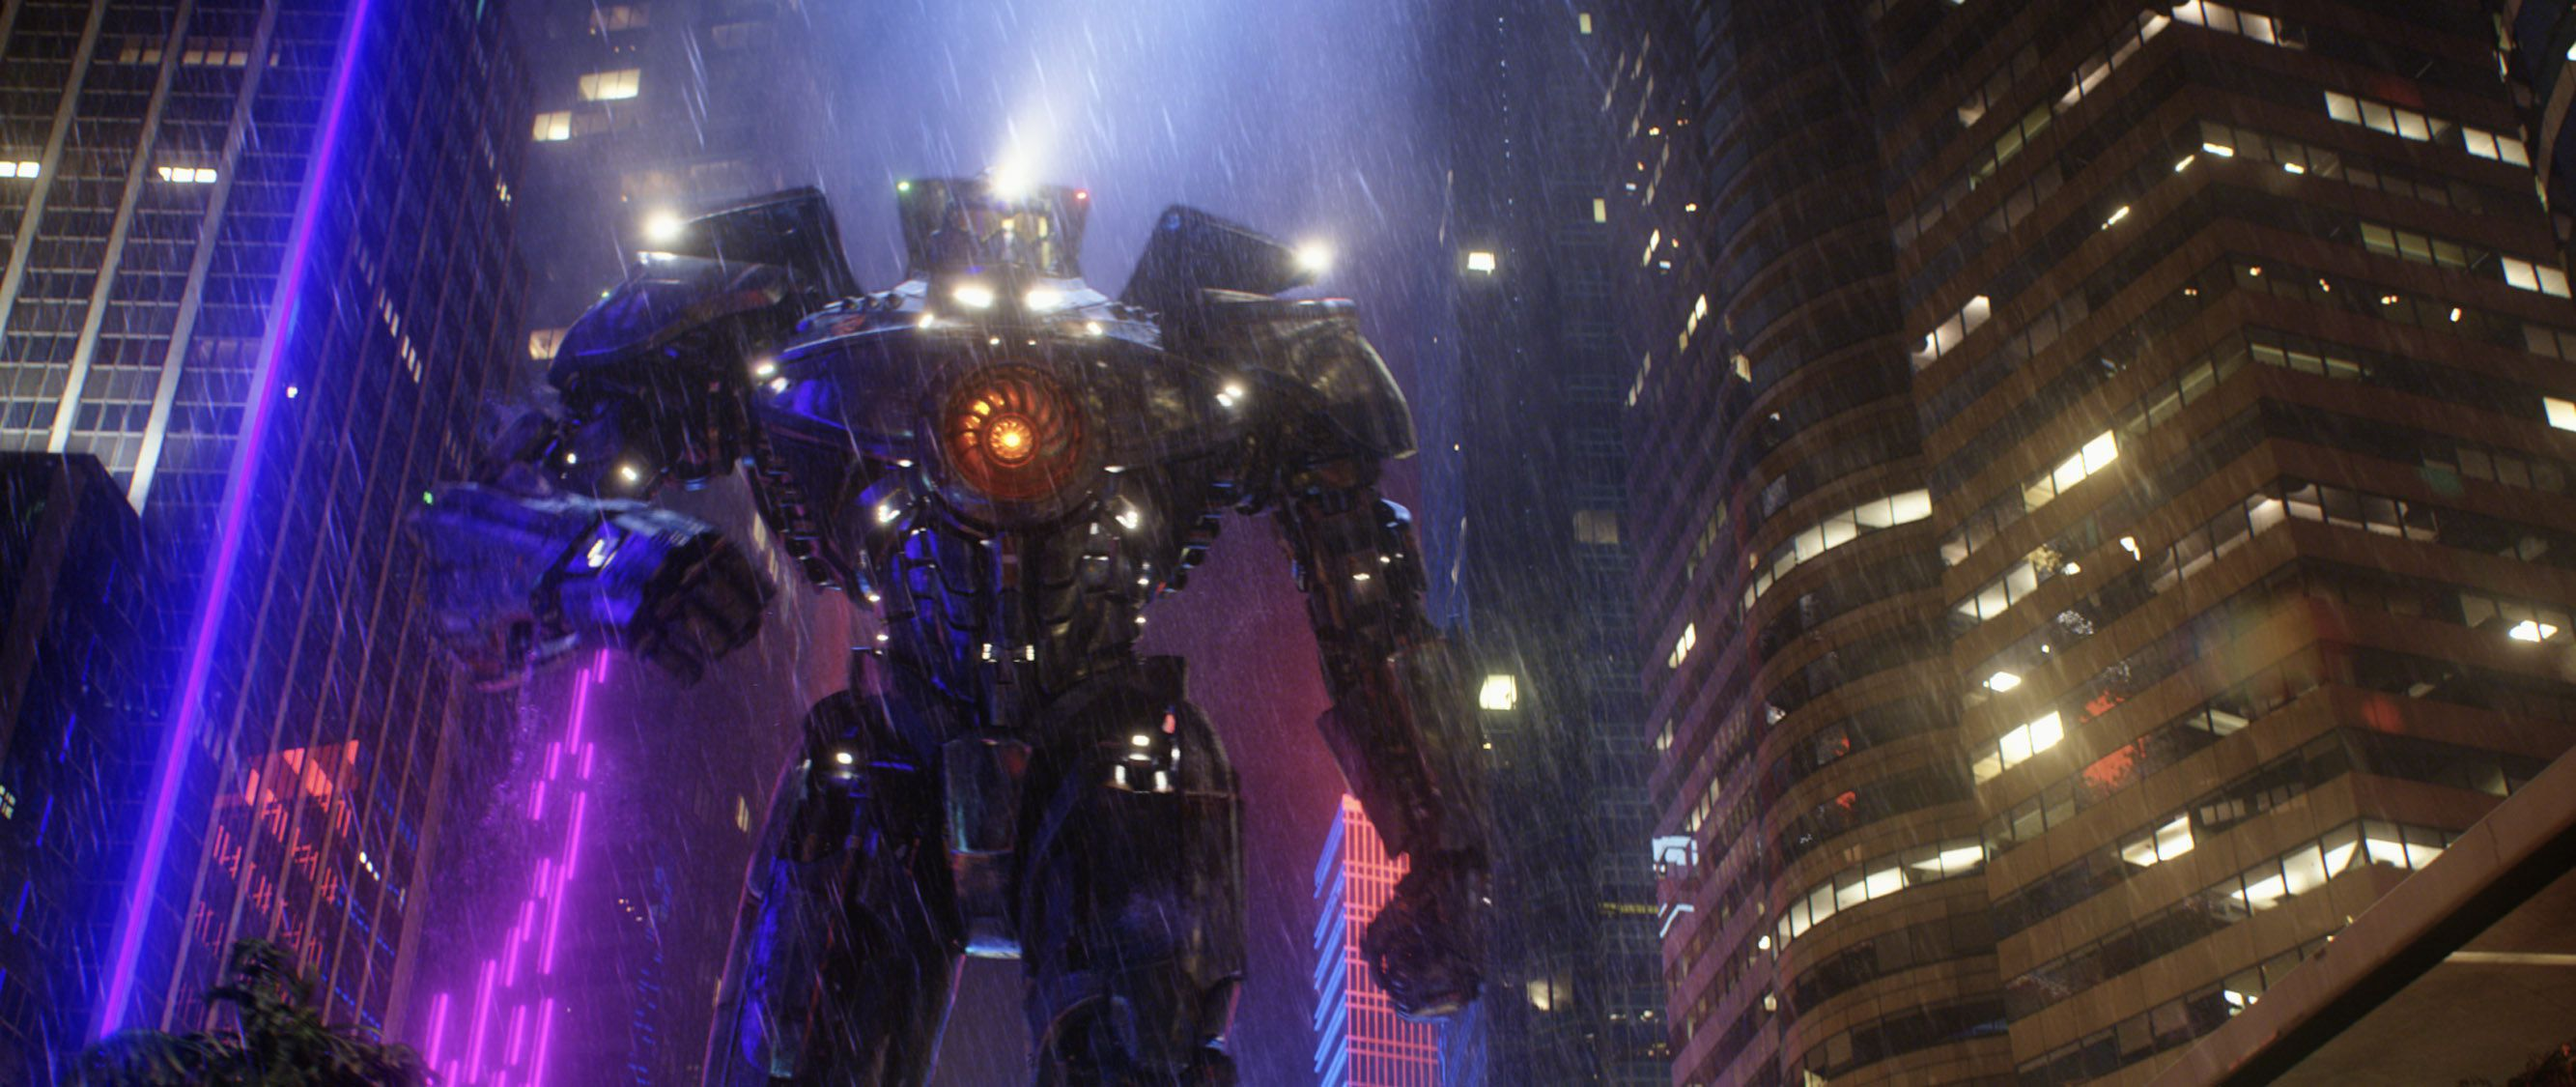 An image from Pacific Rim